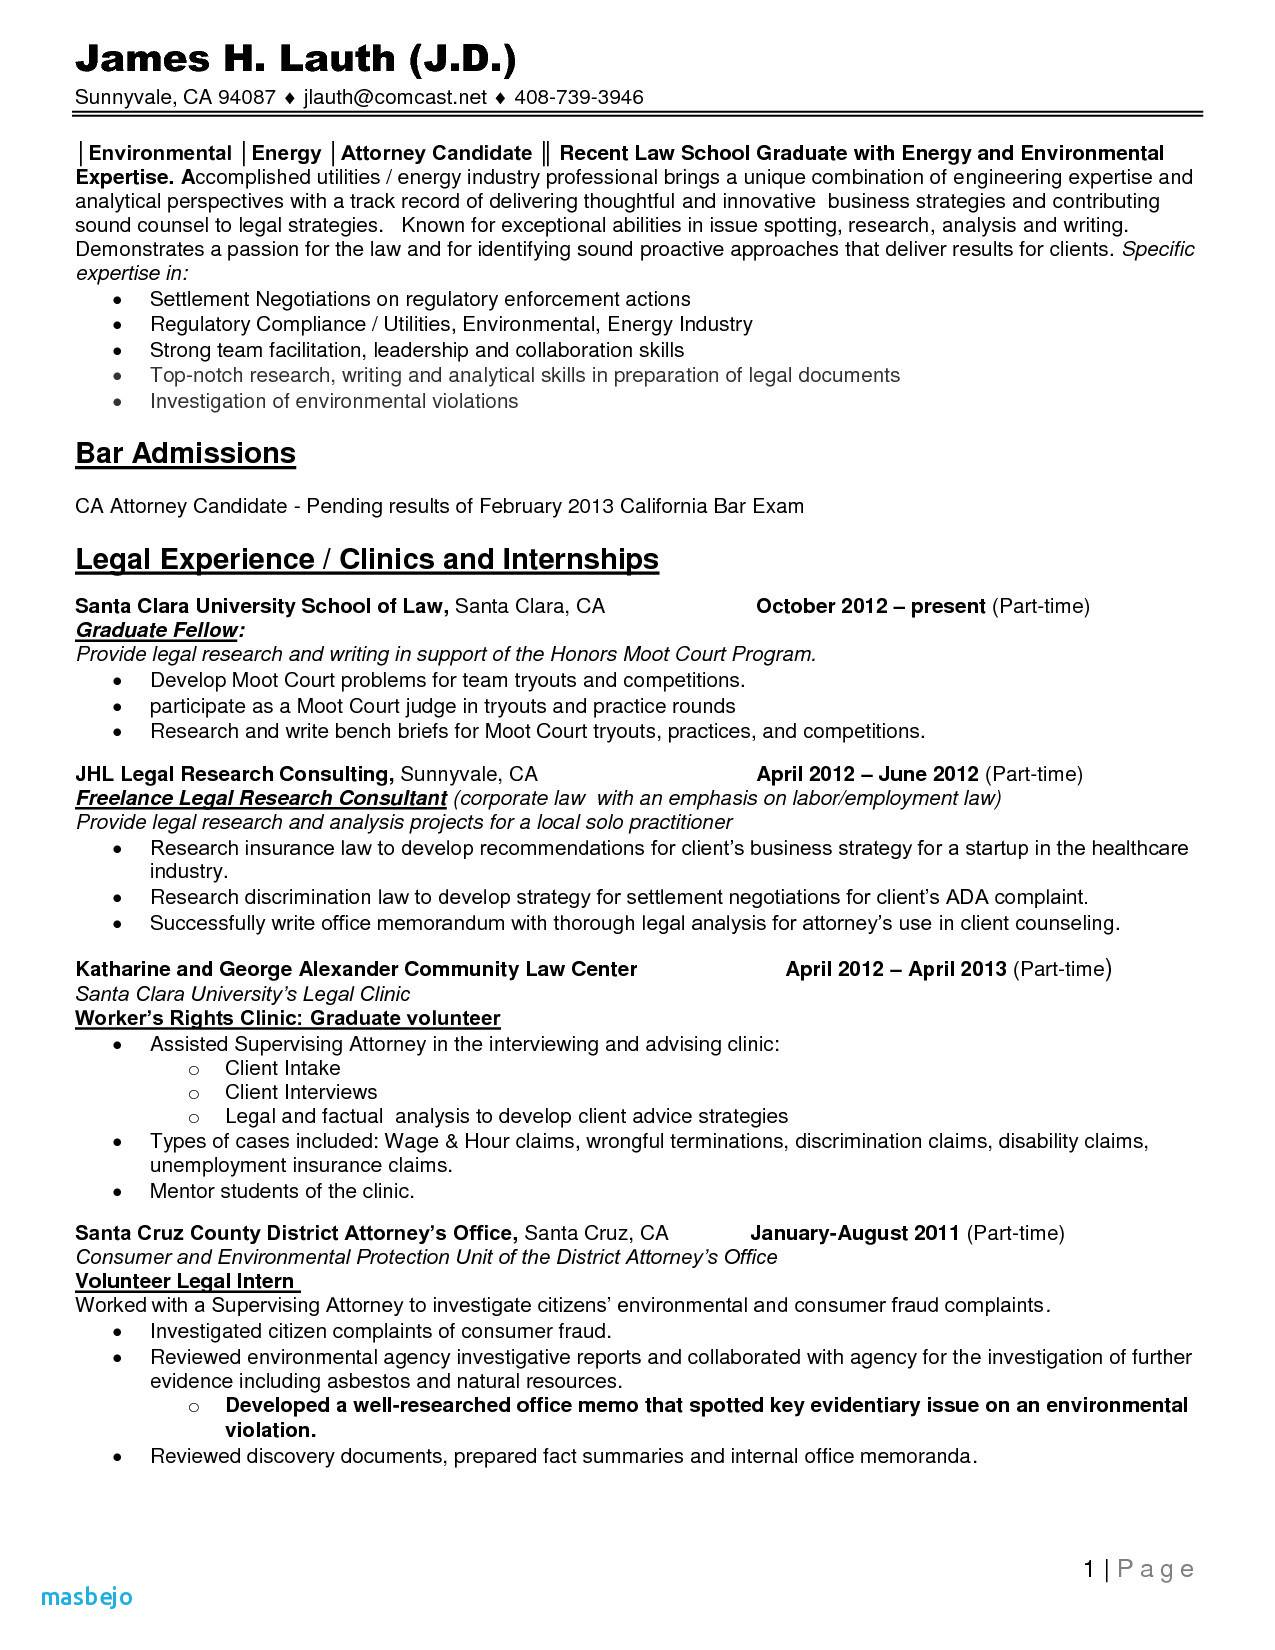 Resume Law School - 31 Best Legal Templates